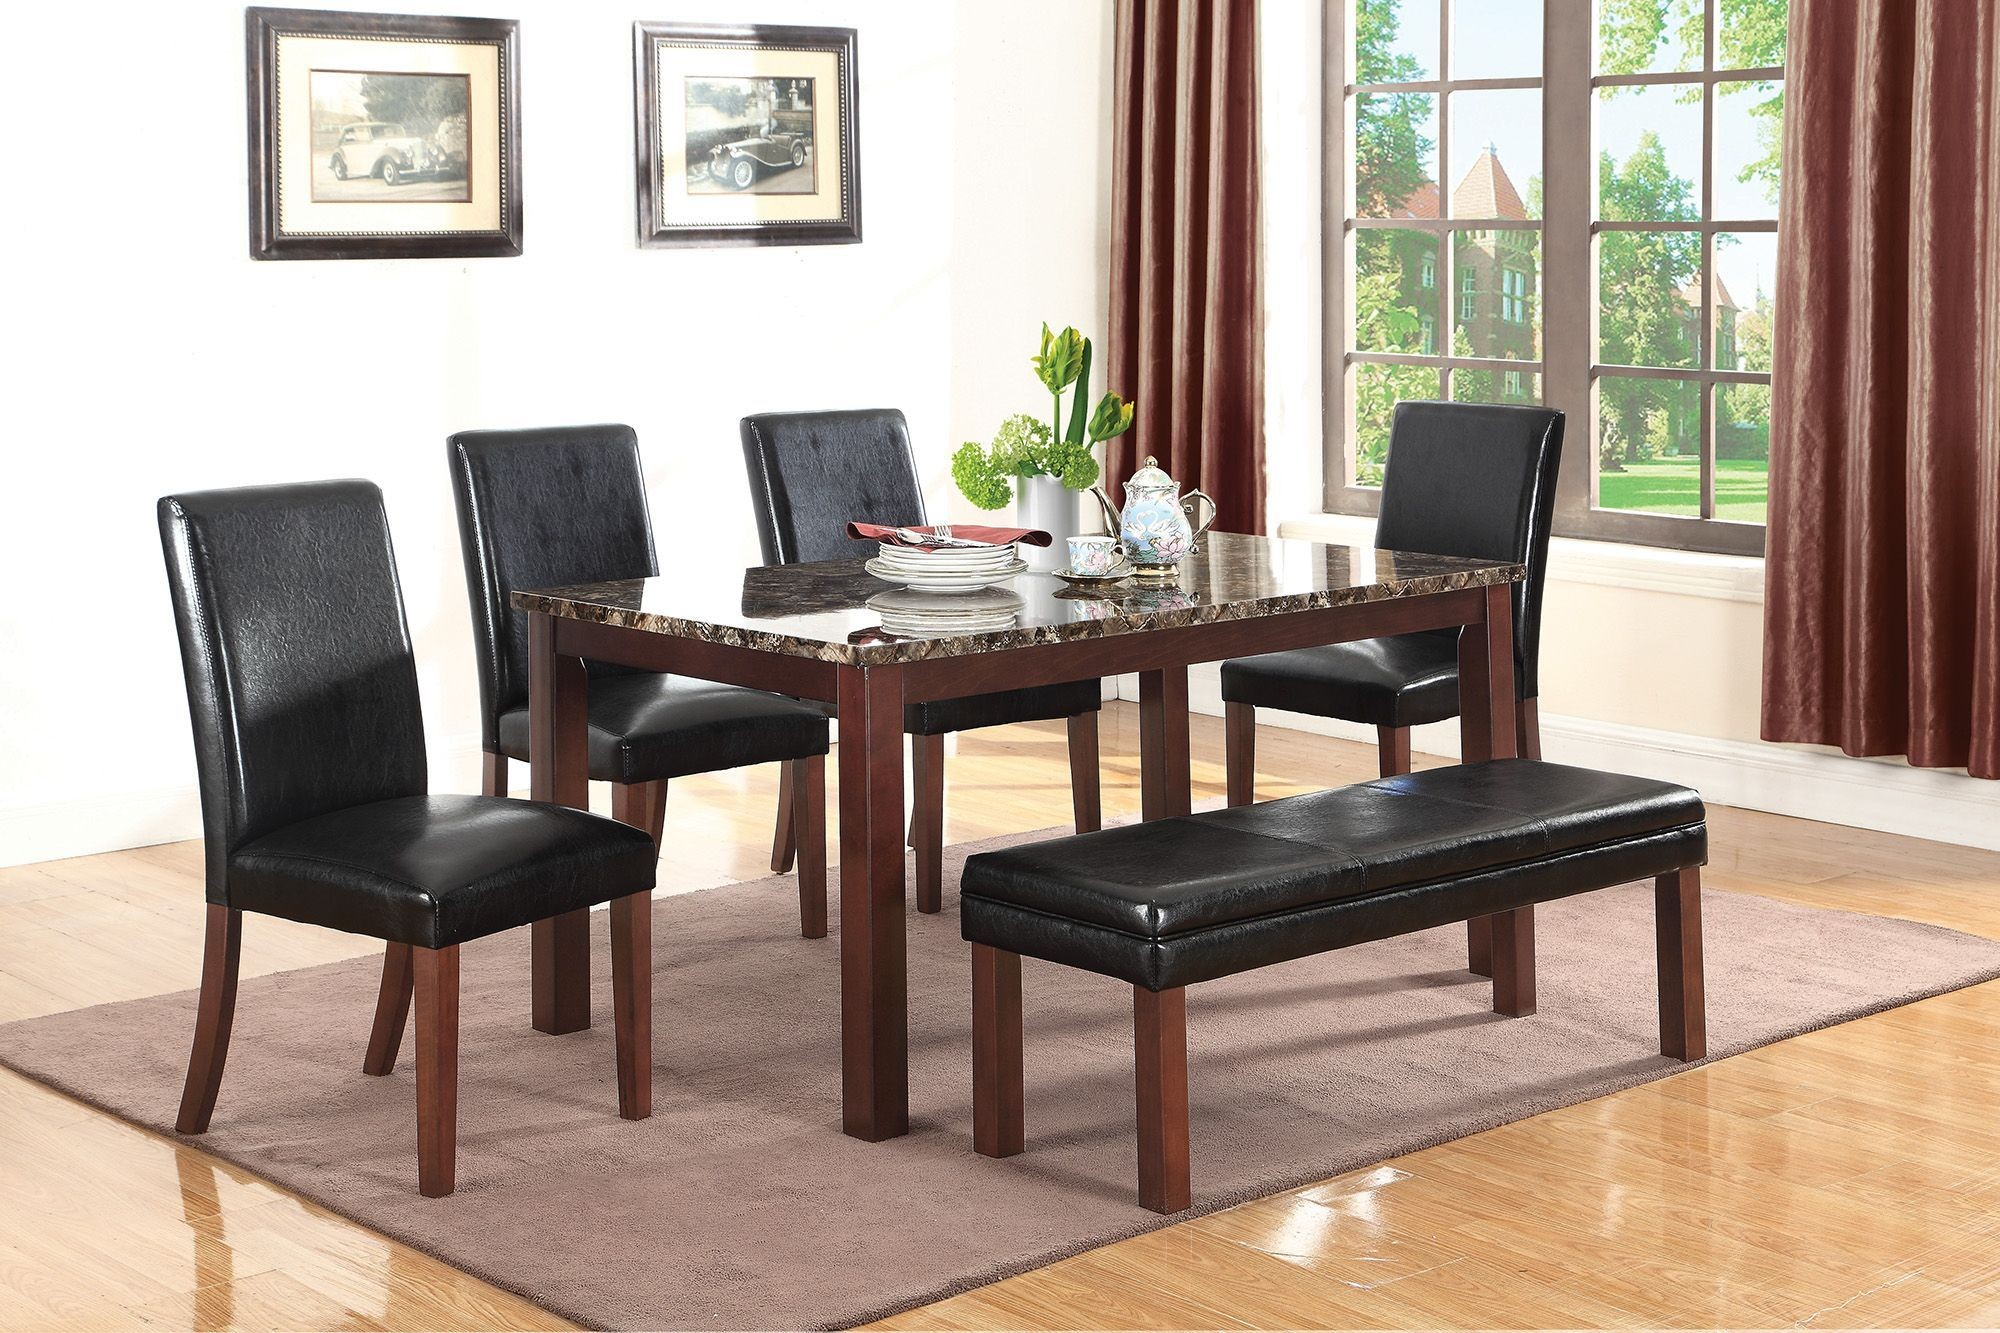 Otero dark brown dining room set from coaster coleman for Dark brown dining room